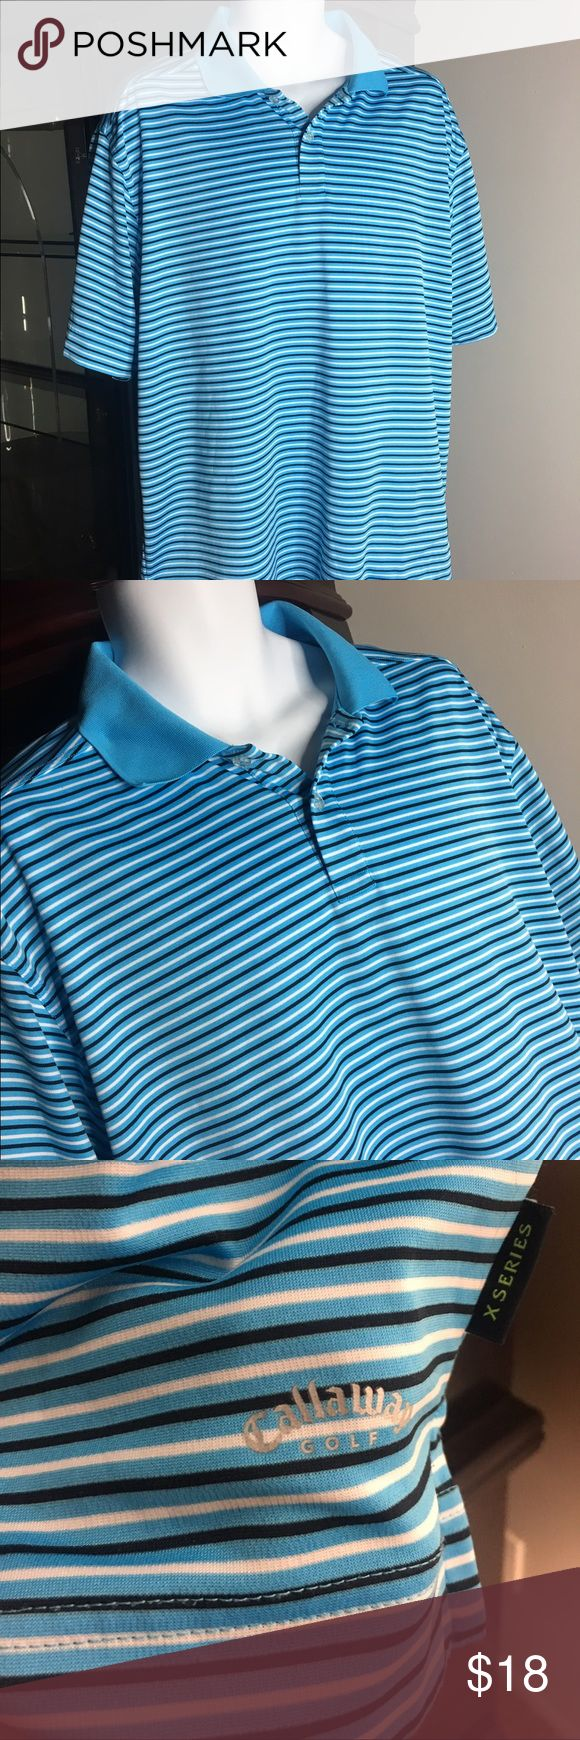 Men's blue striped Callaway Golf shirt You are purchasing a Callaway Golf men's shirt size XL, has no flaws in pristine condition      Our #1 Goal is customer satisfaction. We love to treat our customers with the best service. Feel free to ask any questions if you have any   GO CHECK OUT OUR OTHER NAME BRAND ITEMS   FEEDBACK: we strive to earn positive 5 star feedback for all items. Callaway Shirts Polos